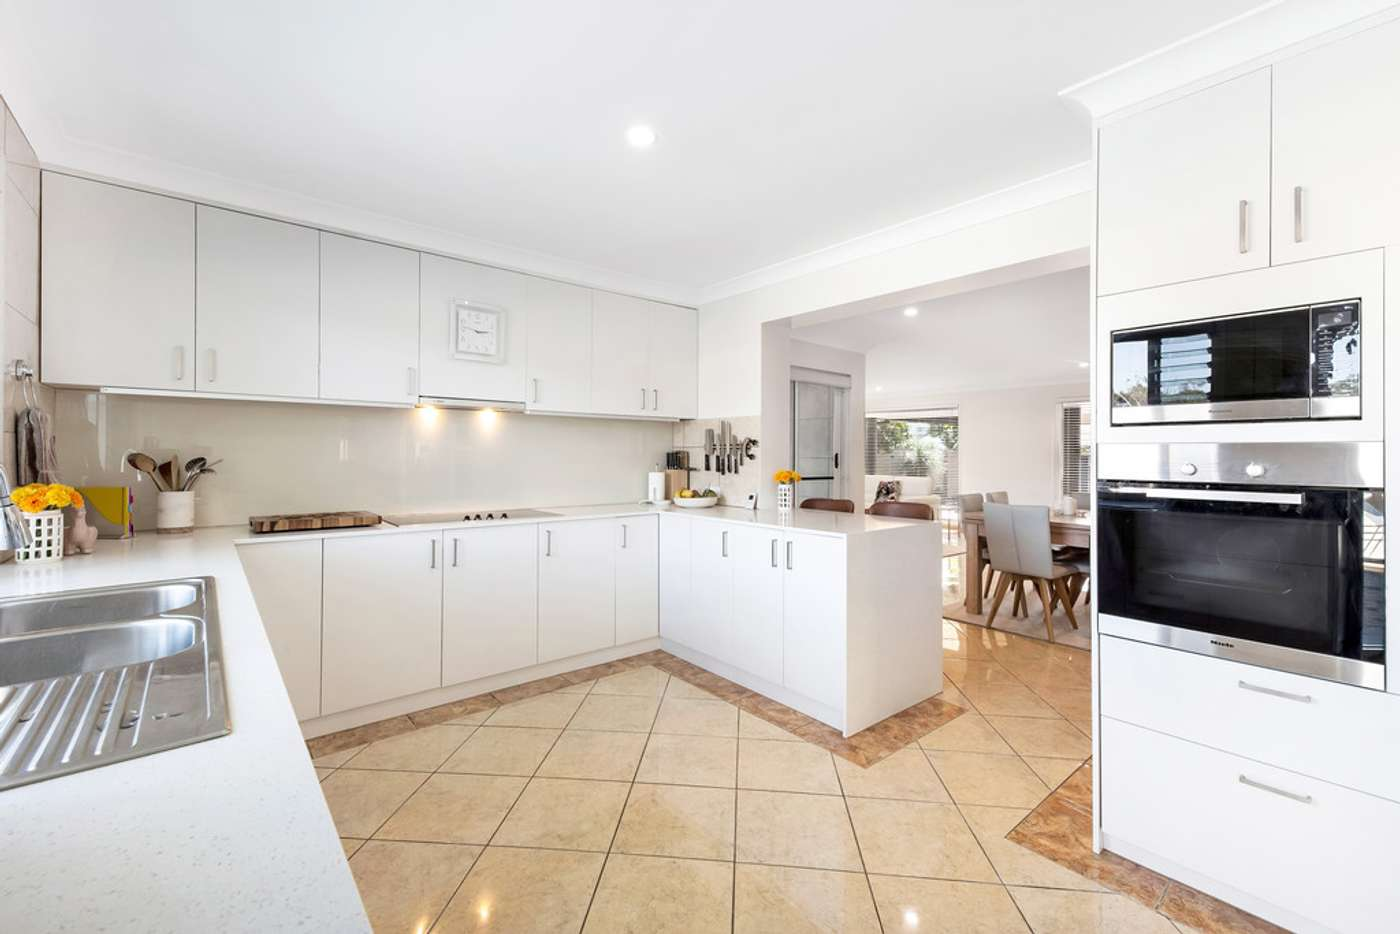 Sixth view of Homely house listing, 42 Sundance Way, Runaway Bay QLD 4216